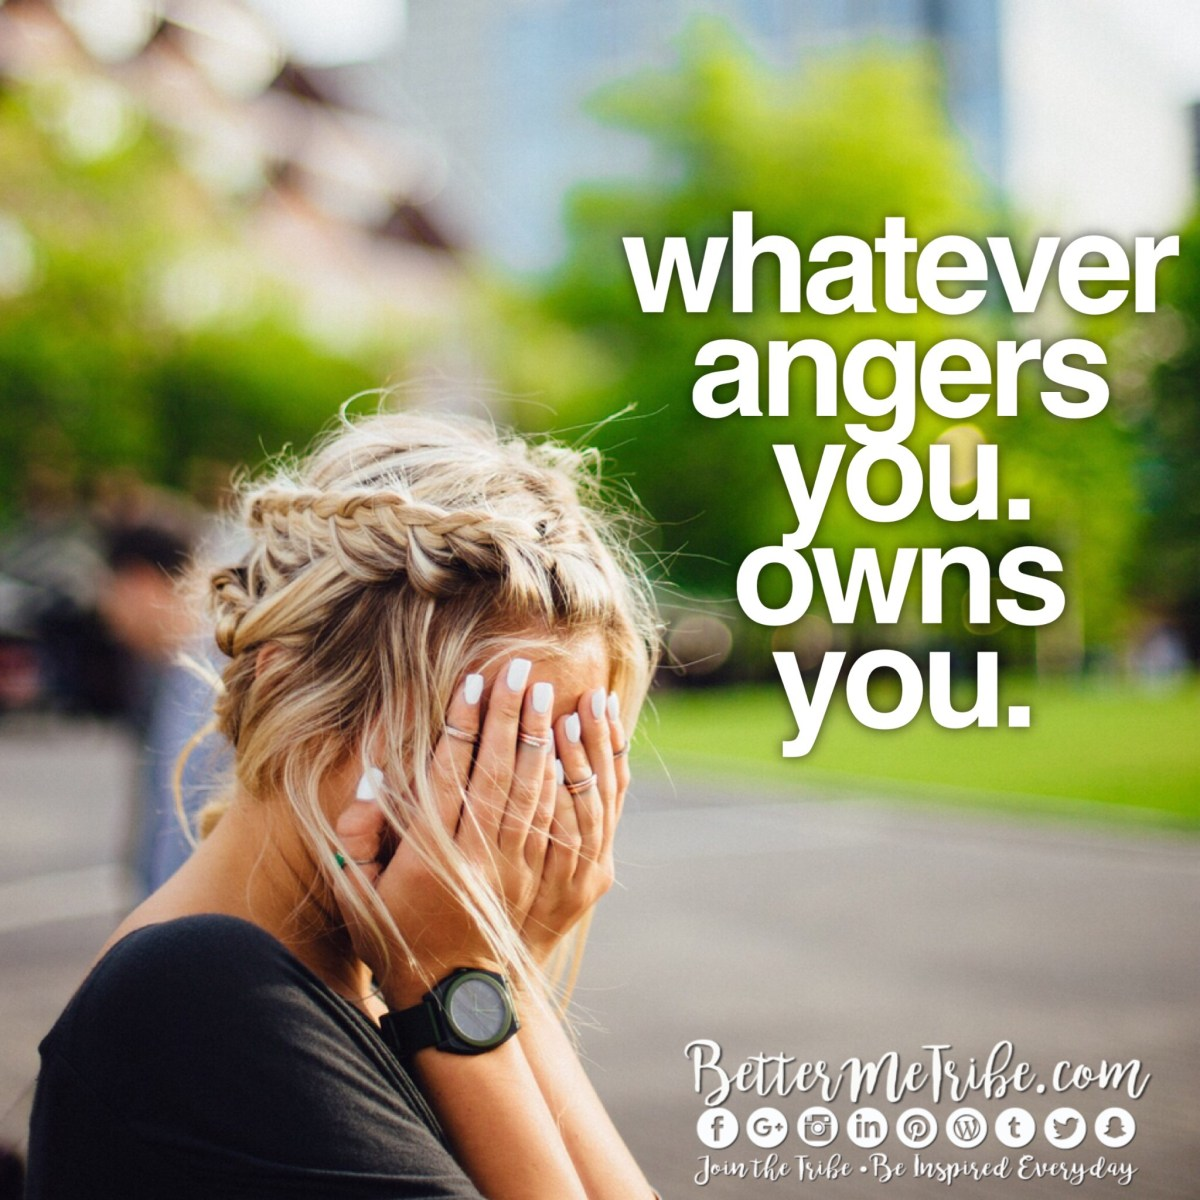 What angers you owns you.